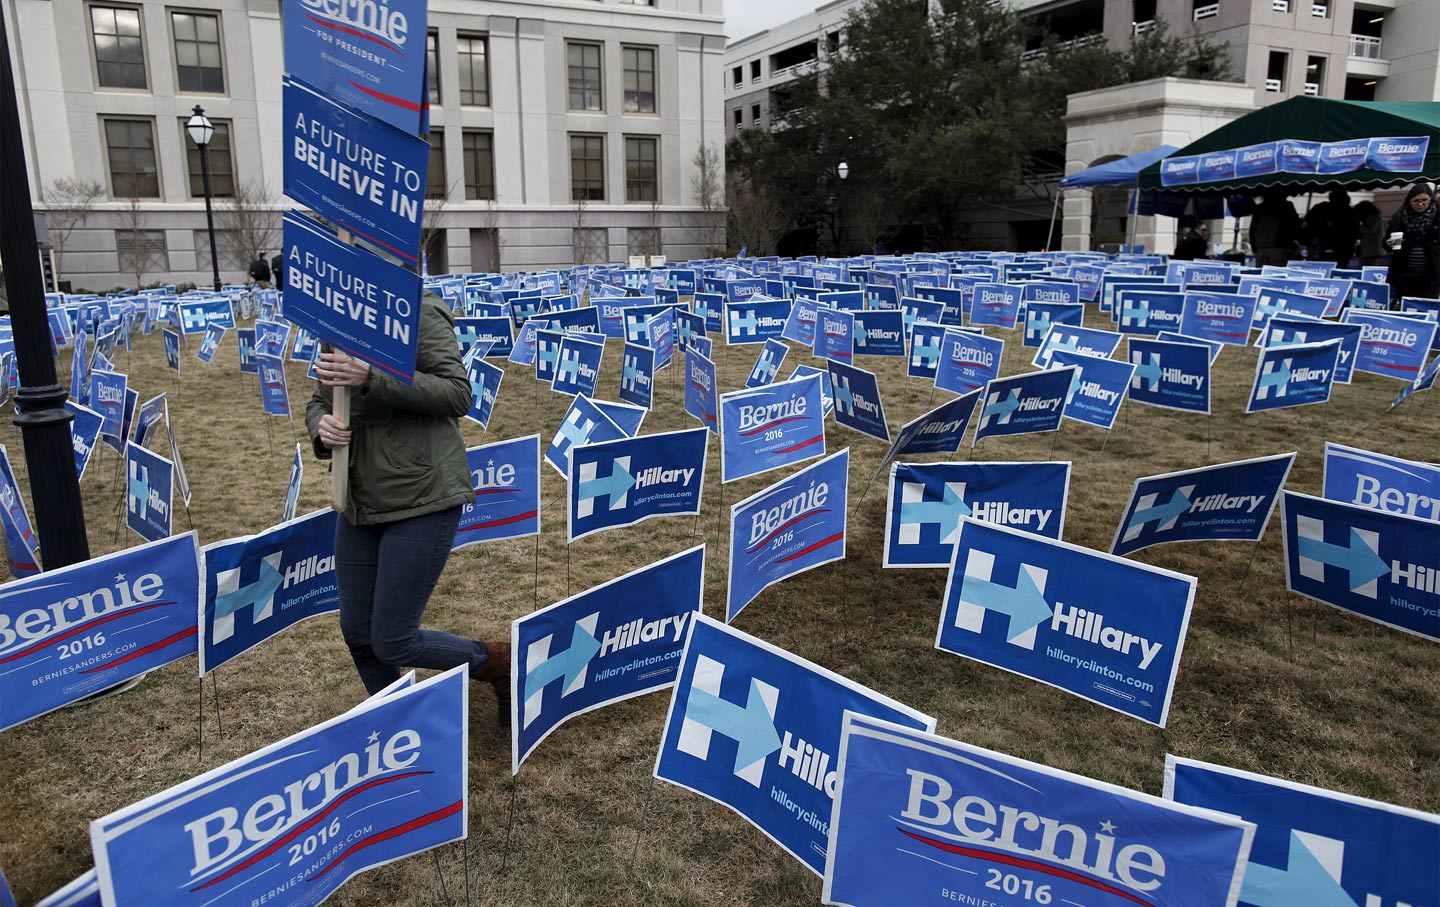 I Used to Support Bernie, but Then I Changed My Mind | The ...